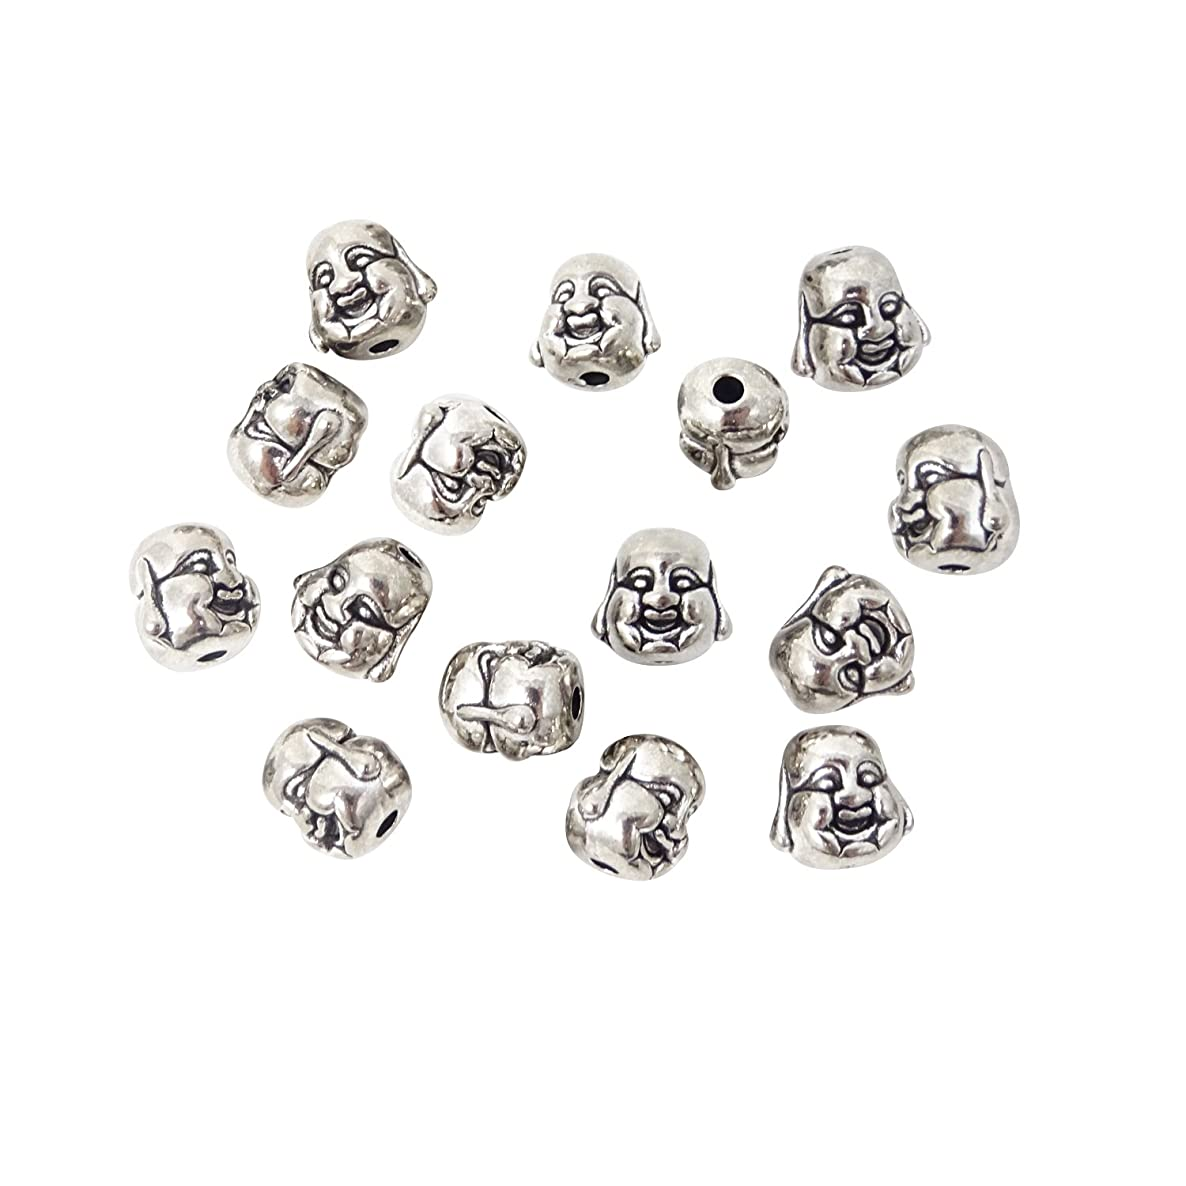 Honbay 30PCS Tibetan Silver Double Sided Happy Laughing Buddha Head Small Spiritual Metal Beads for DIY Crafts or Jewelry Making